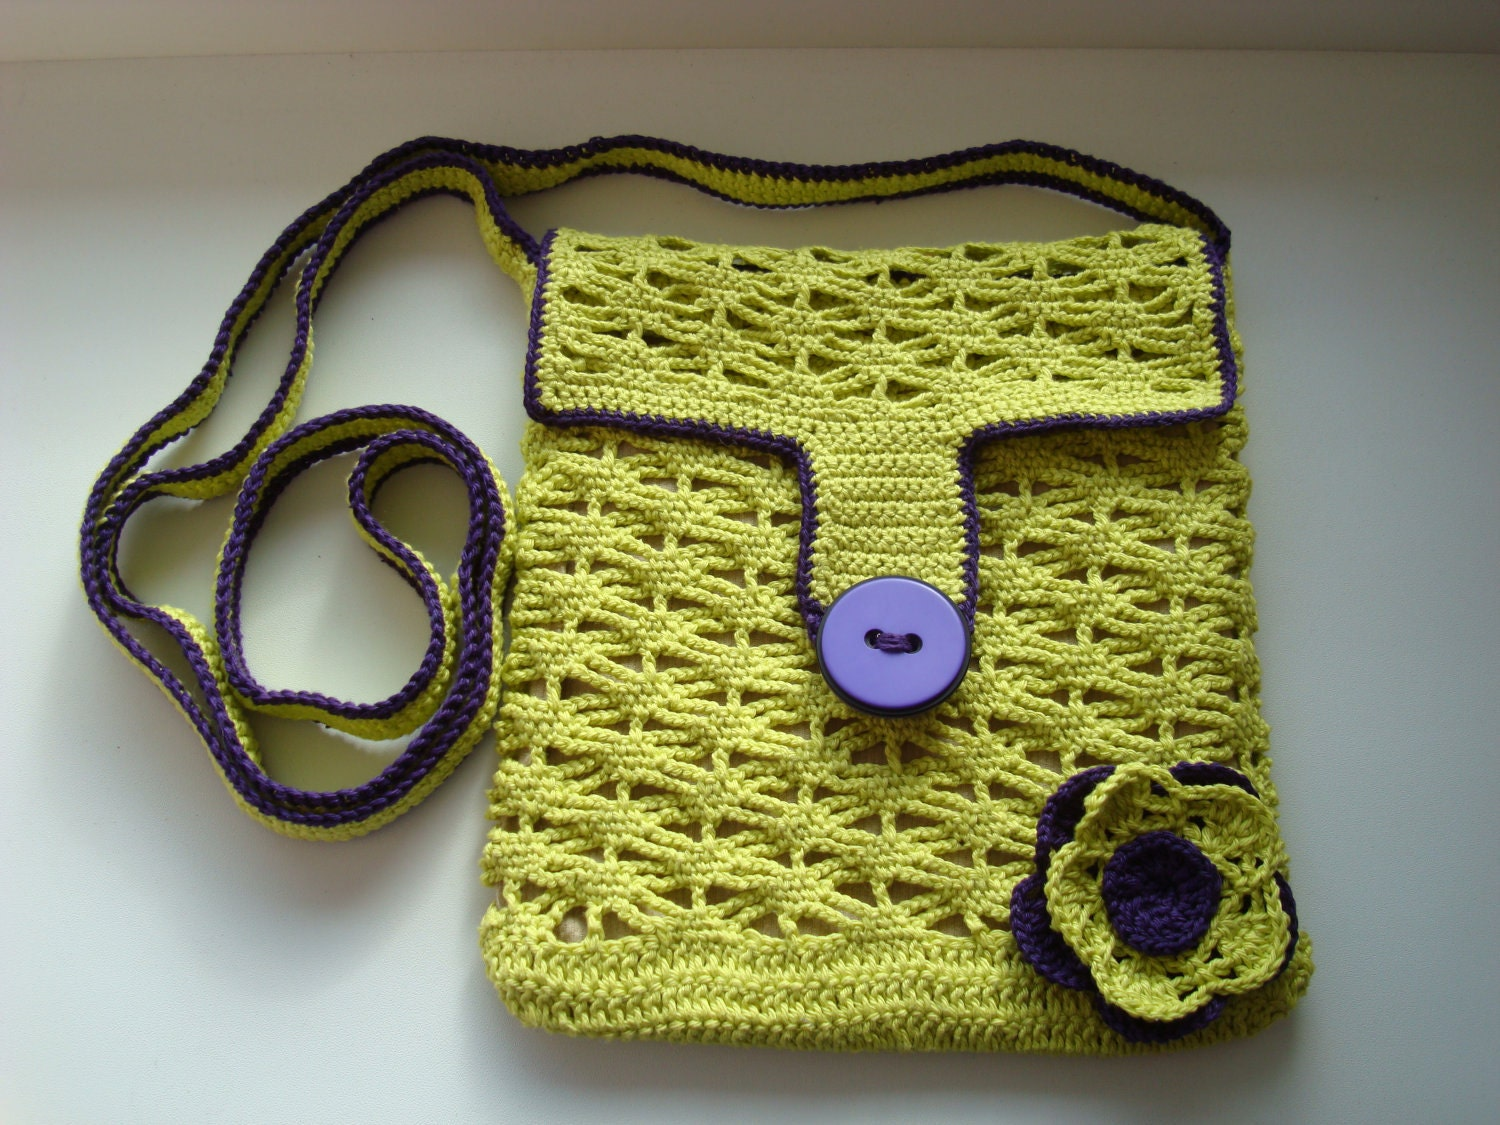 Crochet Small Bag : Crochet BAG purse Shoulder Messenger small // Lime green crochet PURSE ...